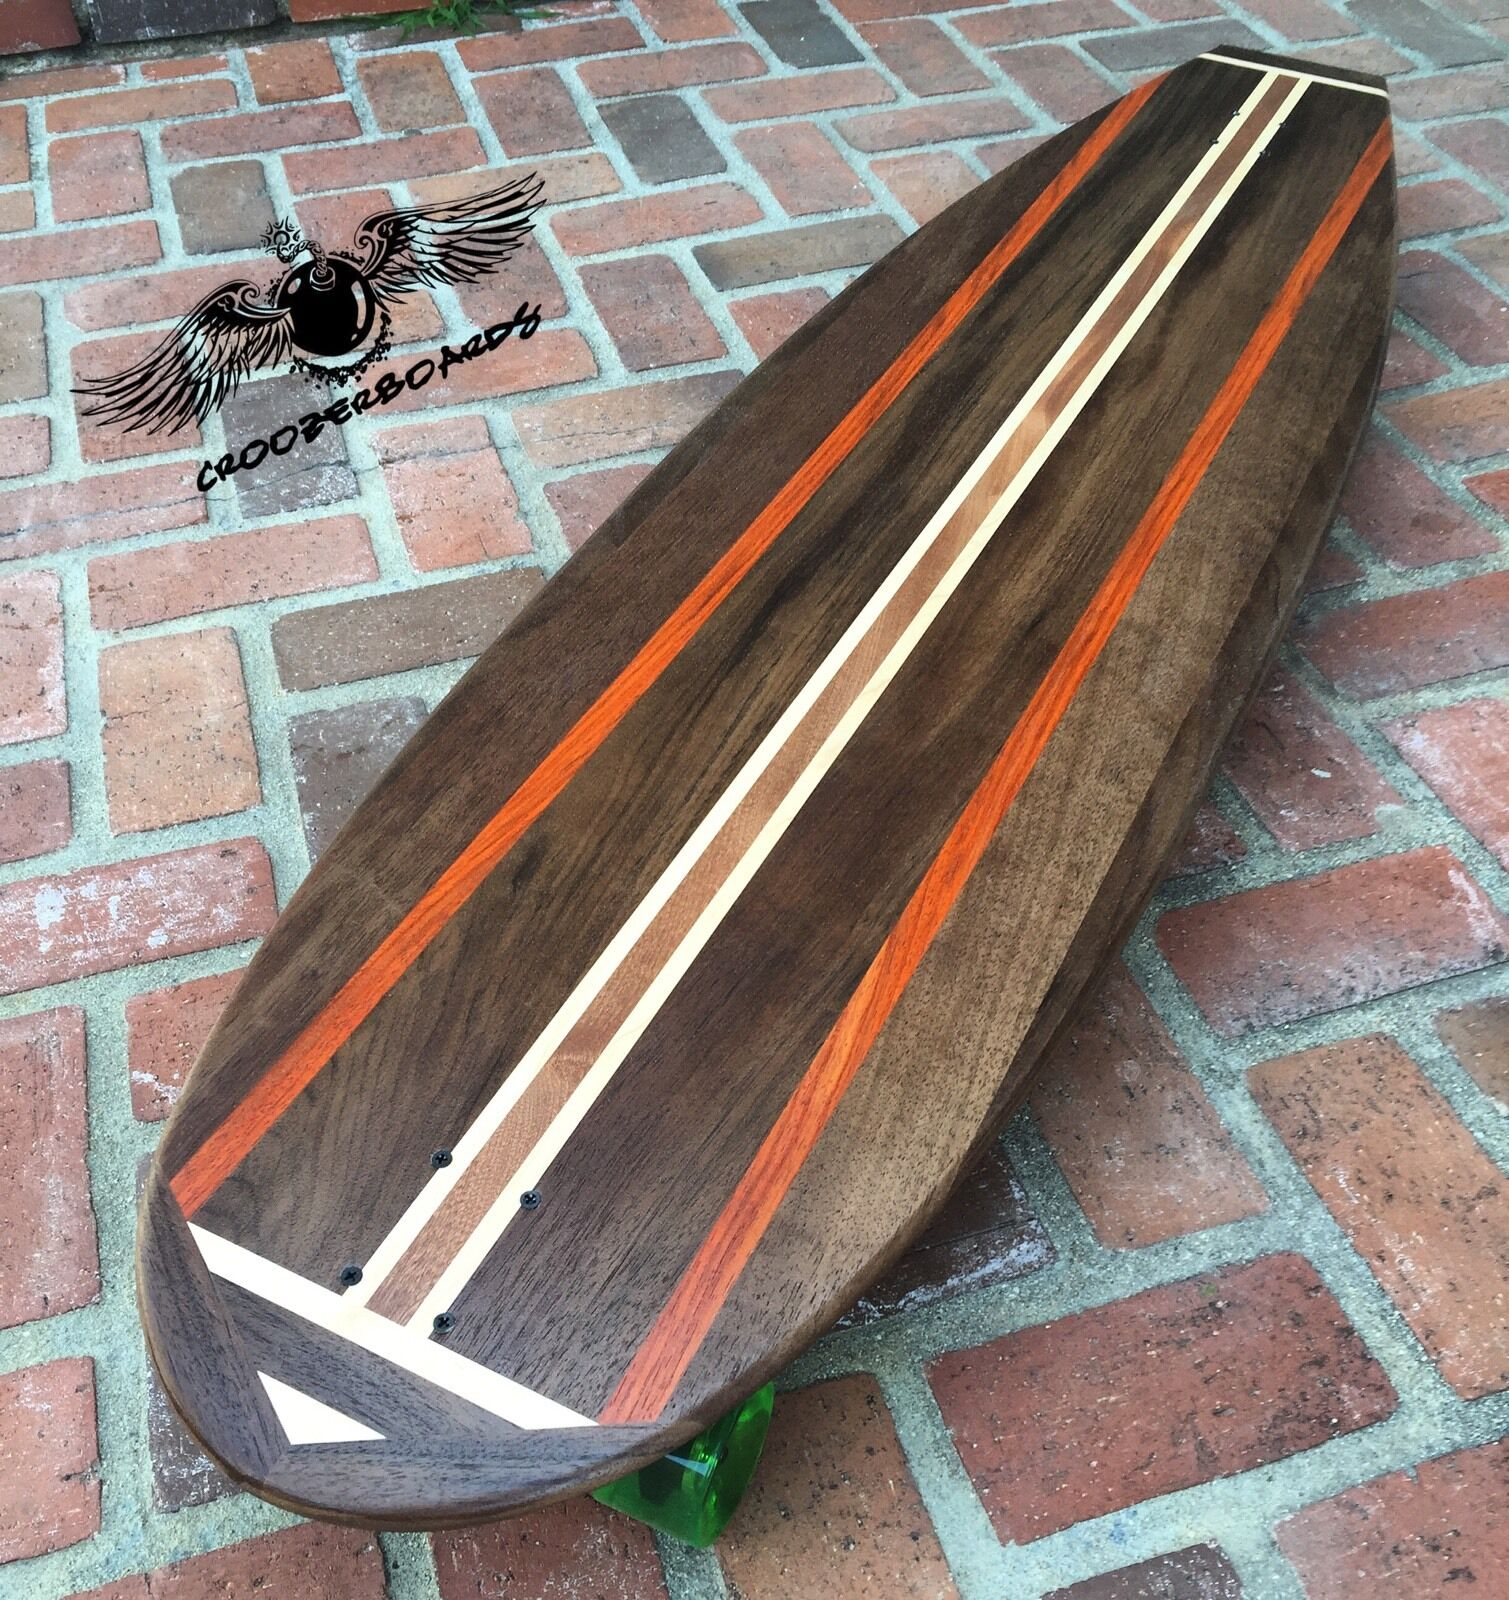 Guillermo  Street Stand Up Paddle Board  (60 x 16) -  SSUP   brand outlet